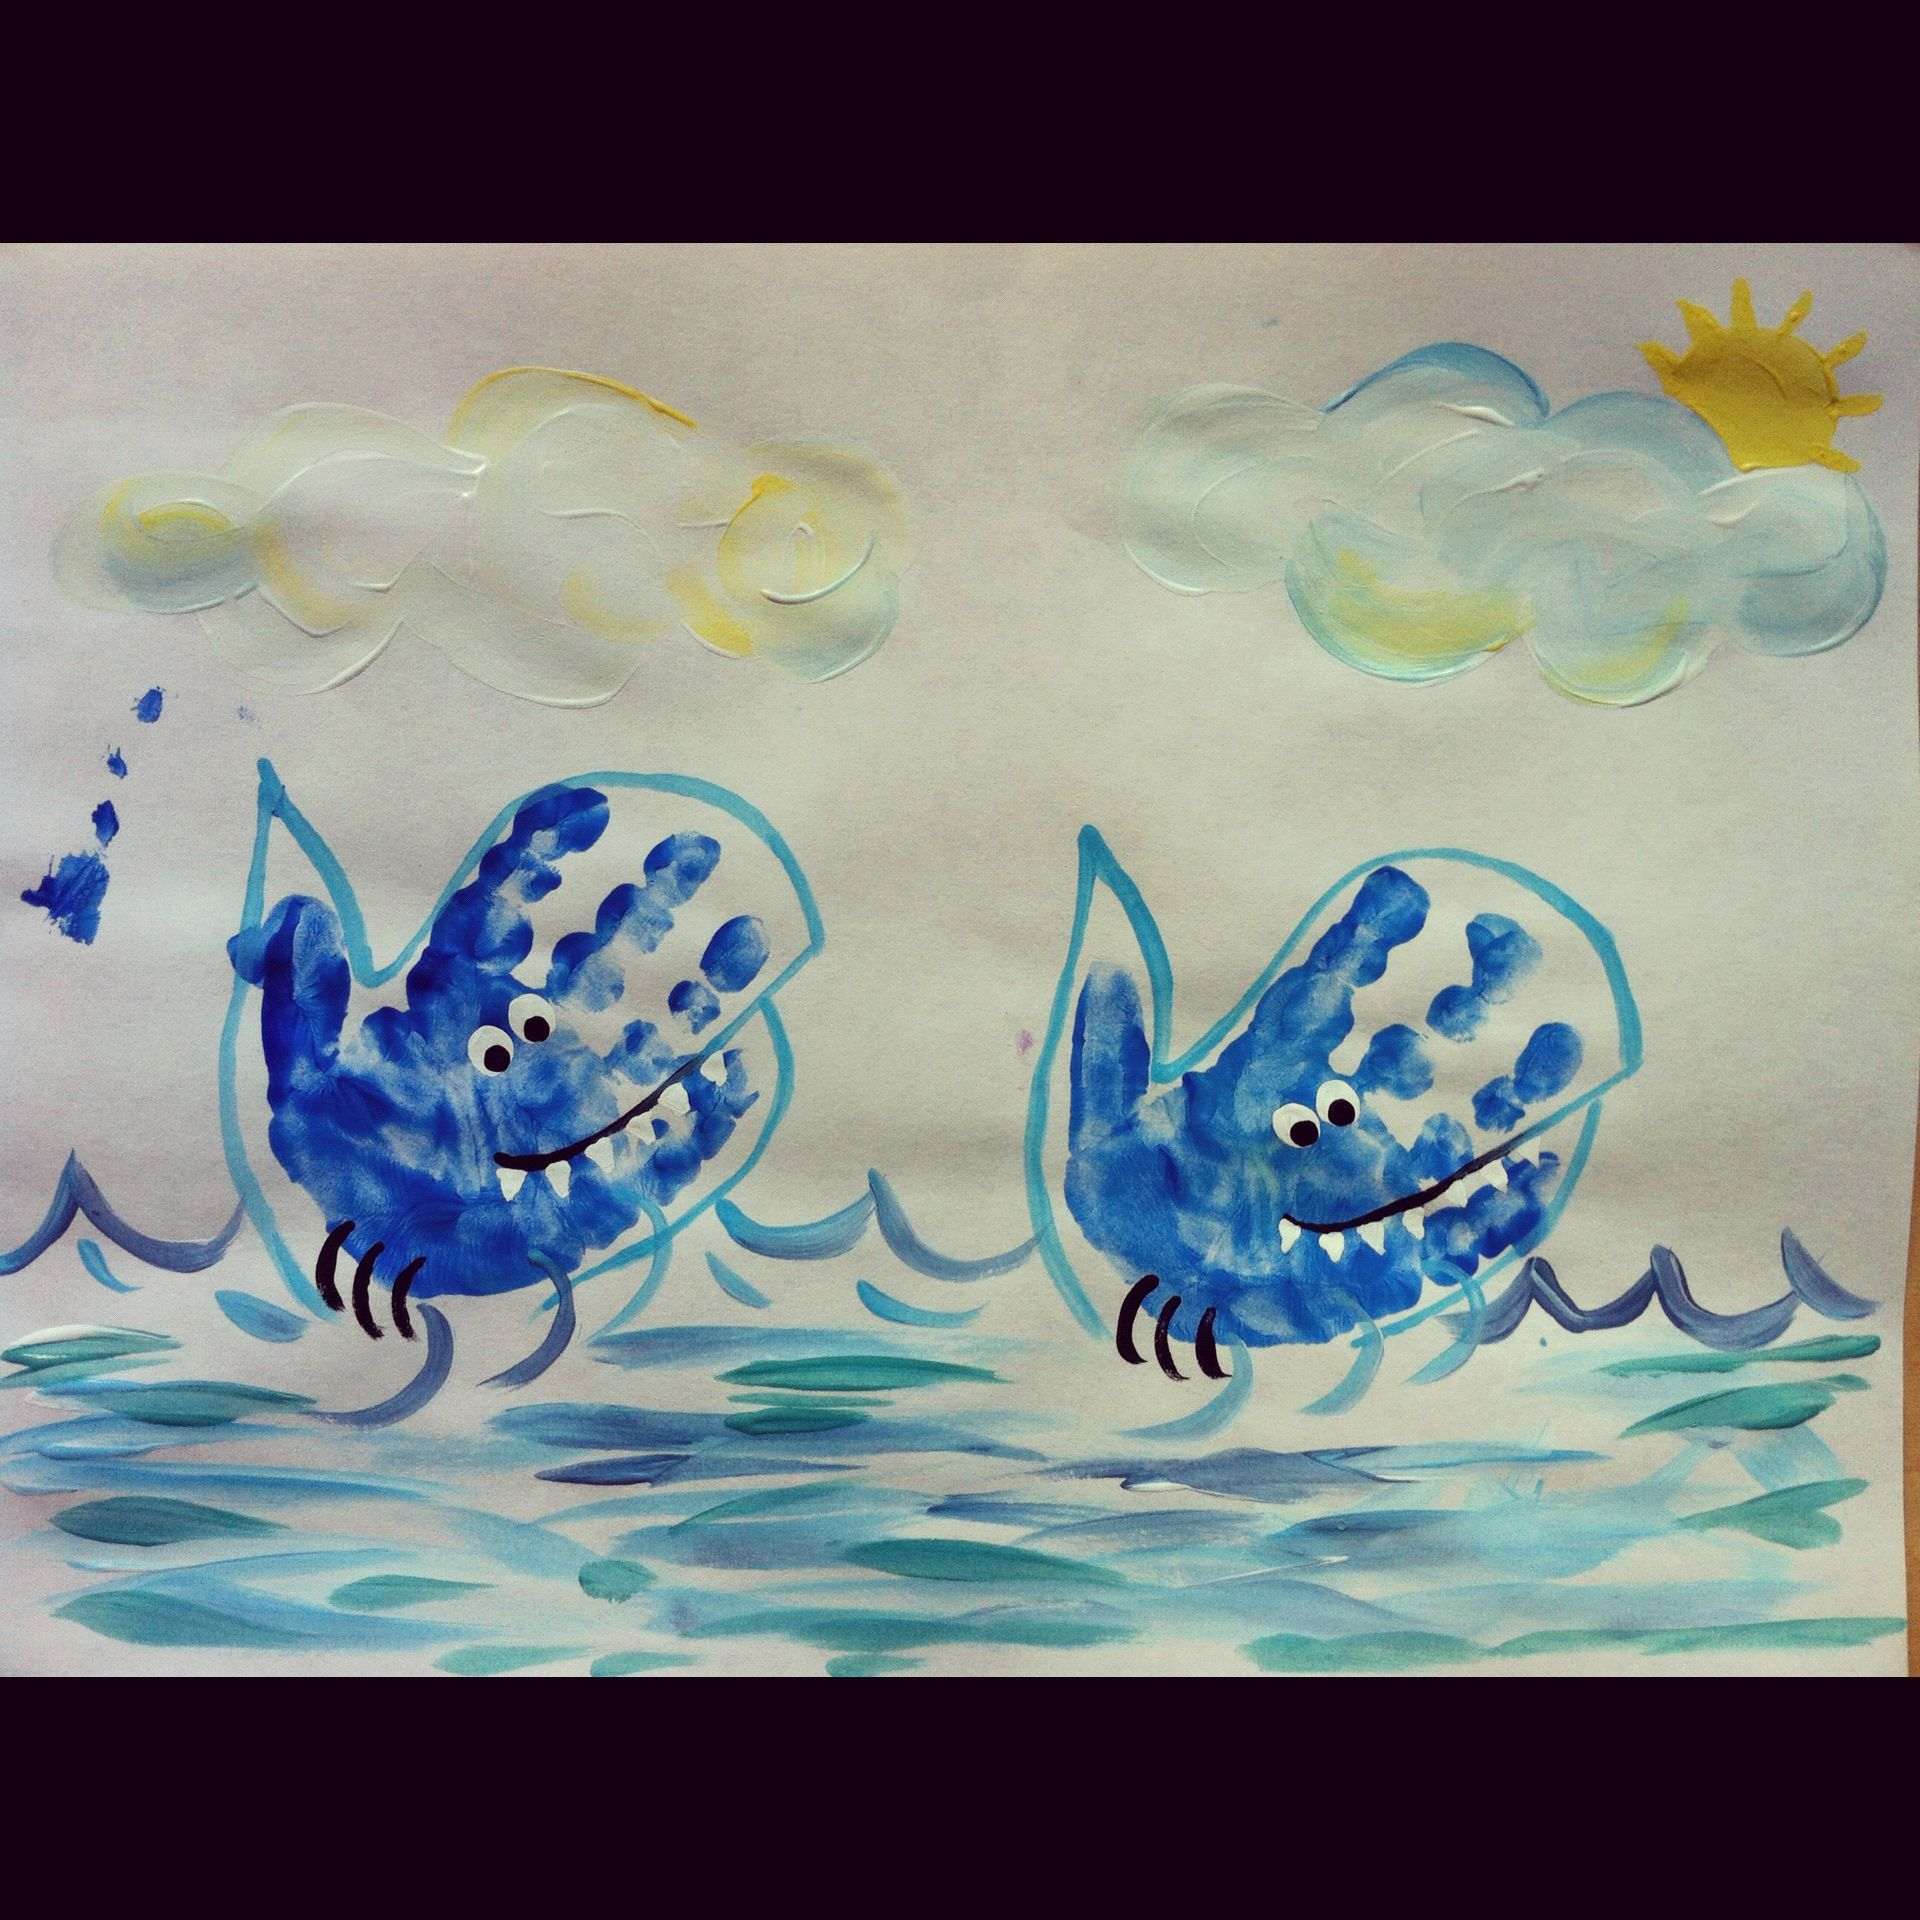 Uncategorized Shark Images To Print shark hand print art i could make this into a whale school whale